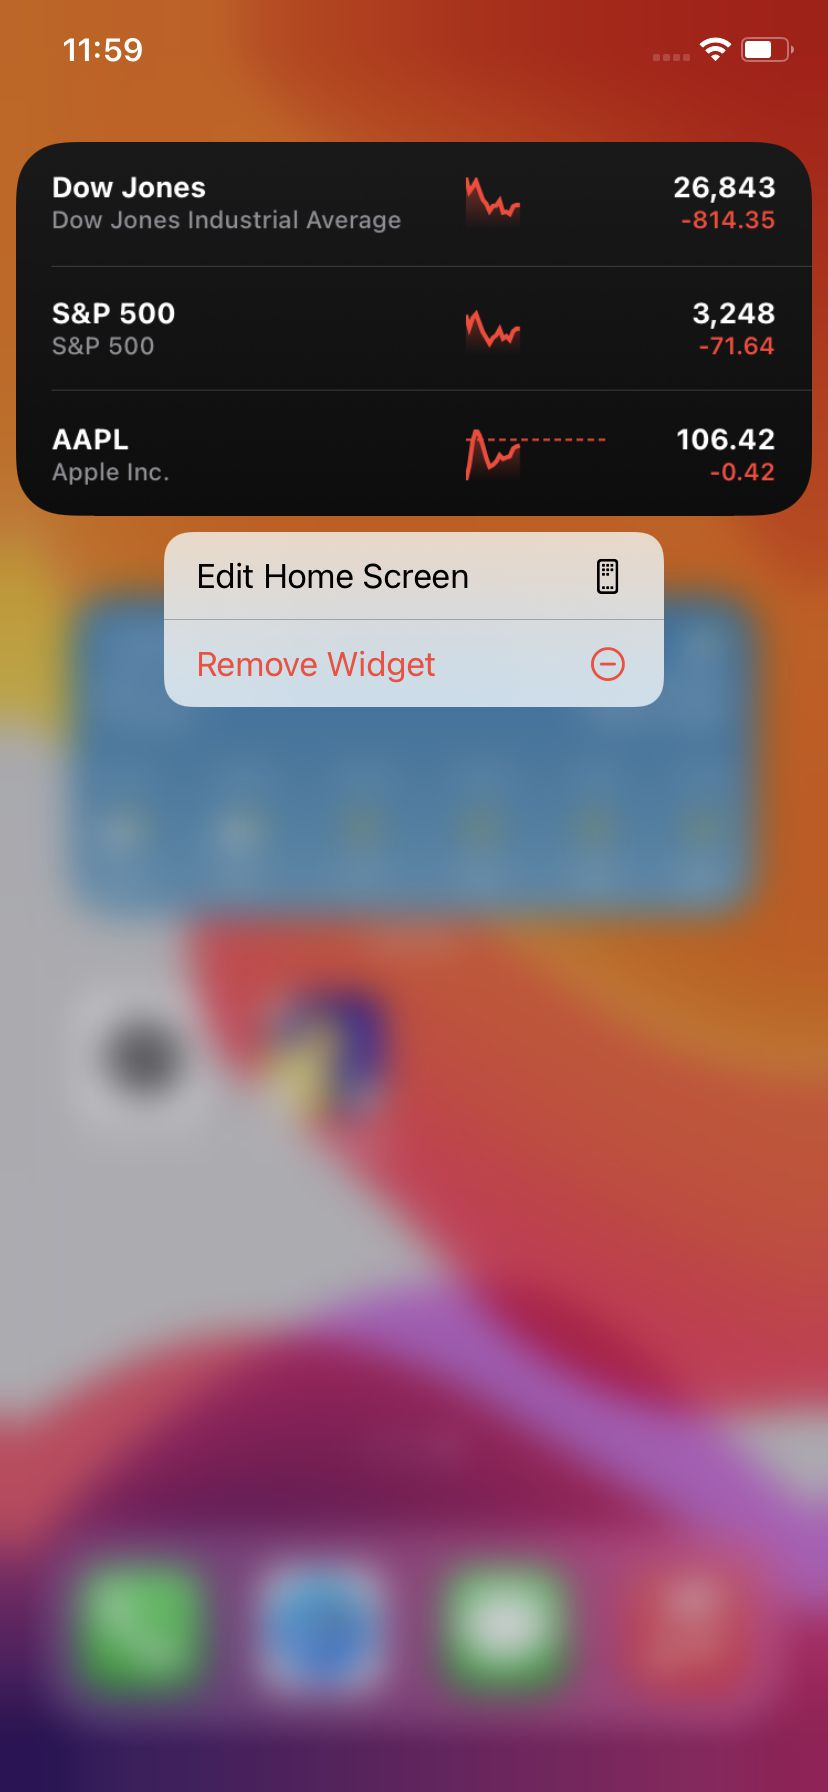 Long press on a widget to remove it.